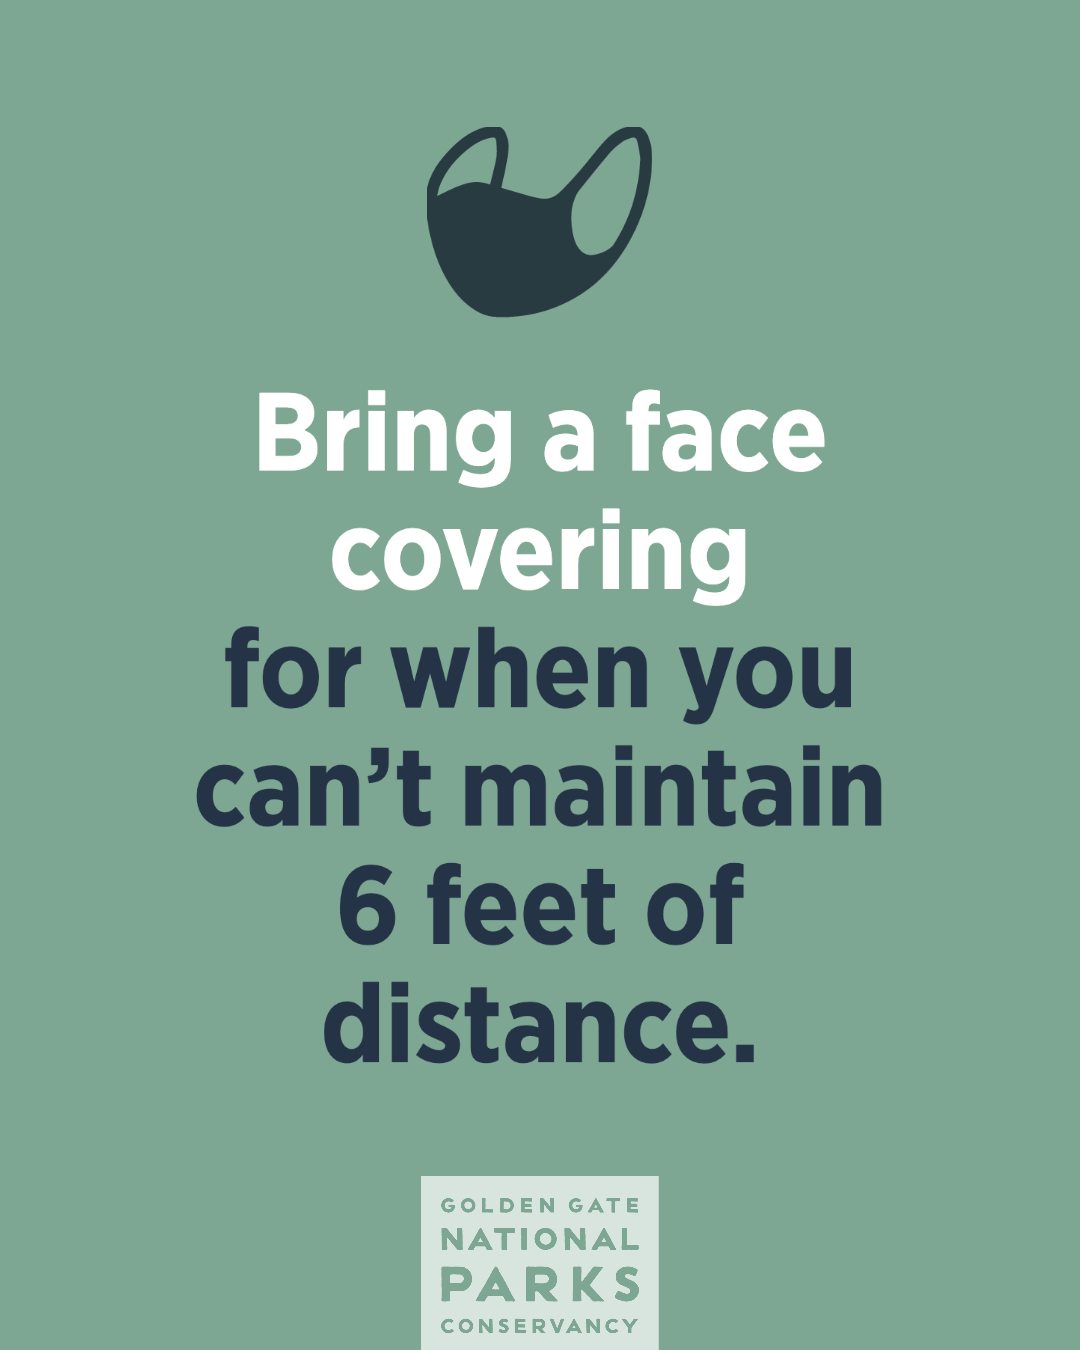 Bring a face covering for when you can't maintain 6 feet of distance.